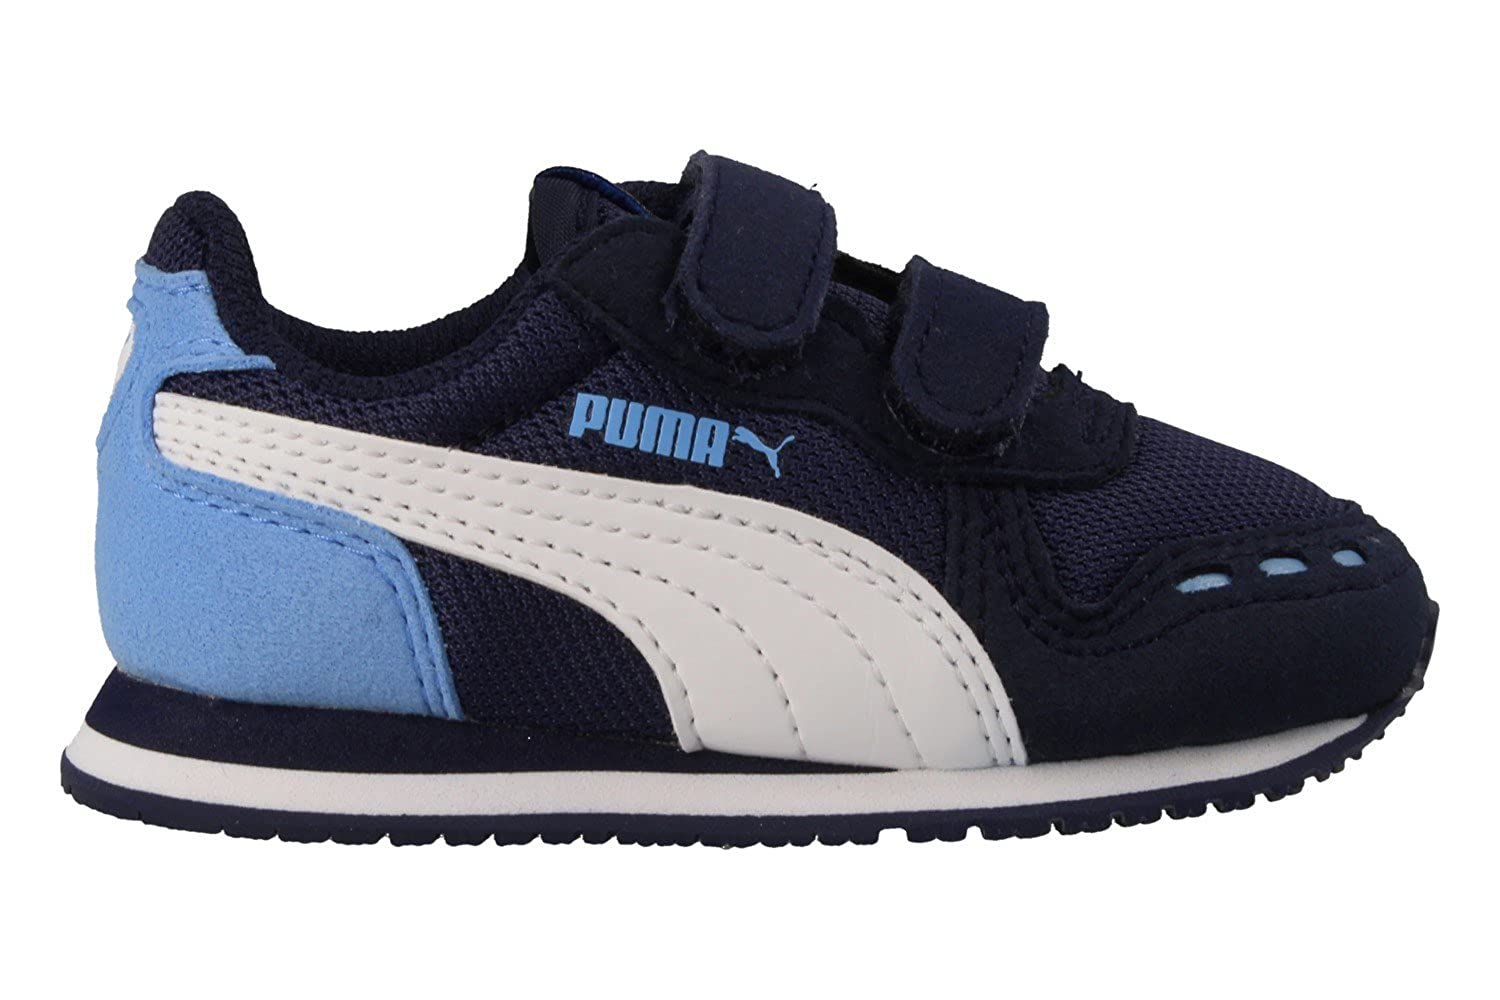 Puma Sneaker 356373 28 Cabana Racer 27 Blue: Amazon.co.uk